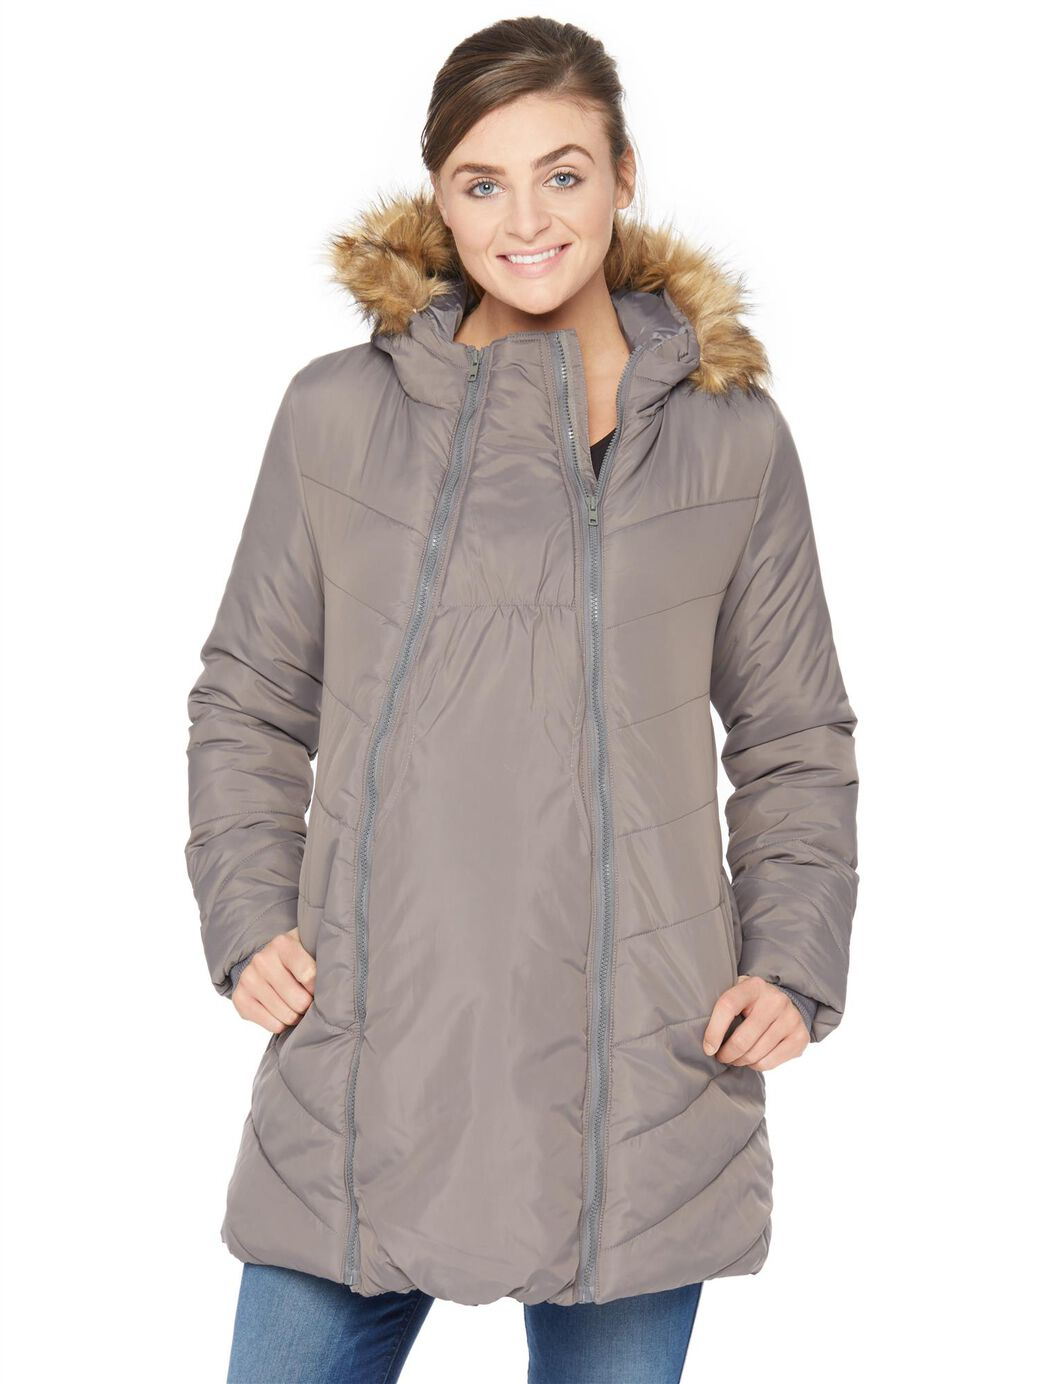 Modern Eternity 3 In 1 Maternity Puffer Coat at Motherhood Maternity in Victor, NY | Tuggl